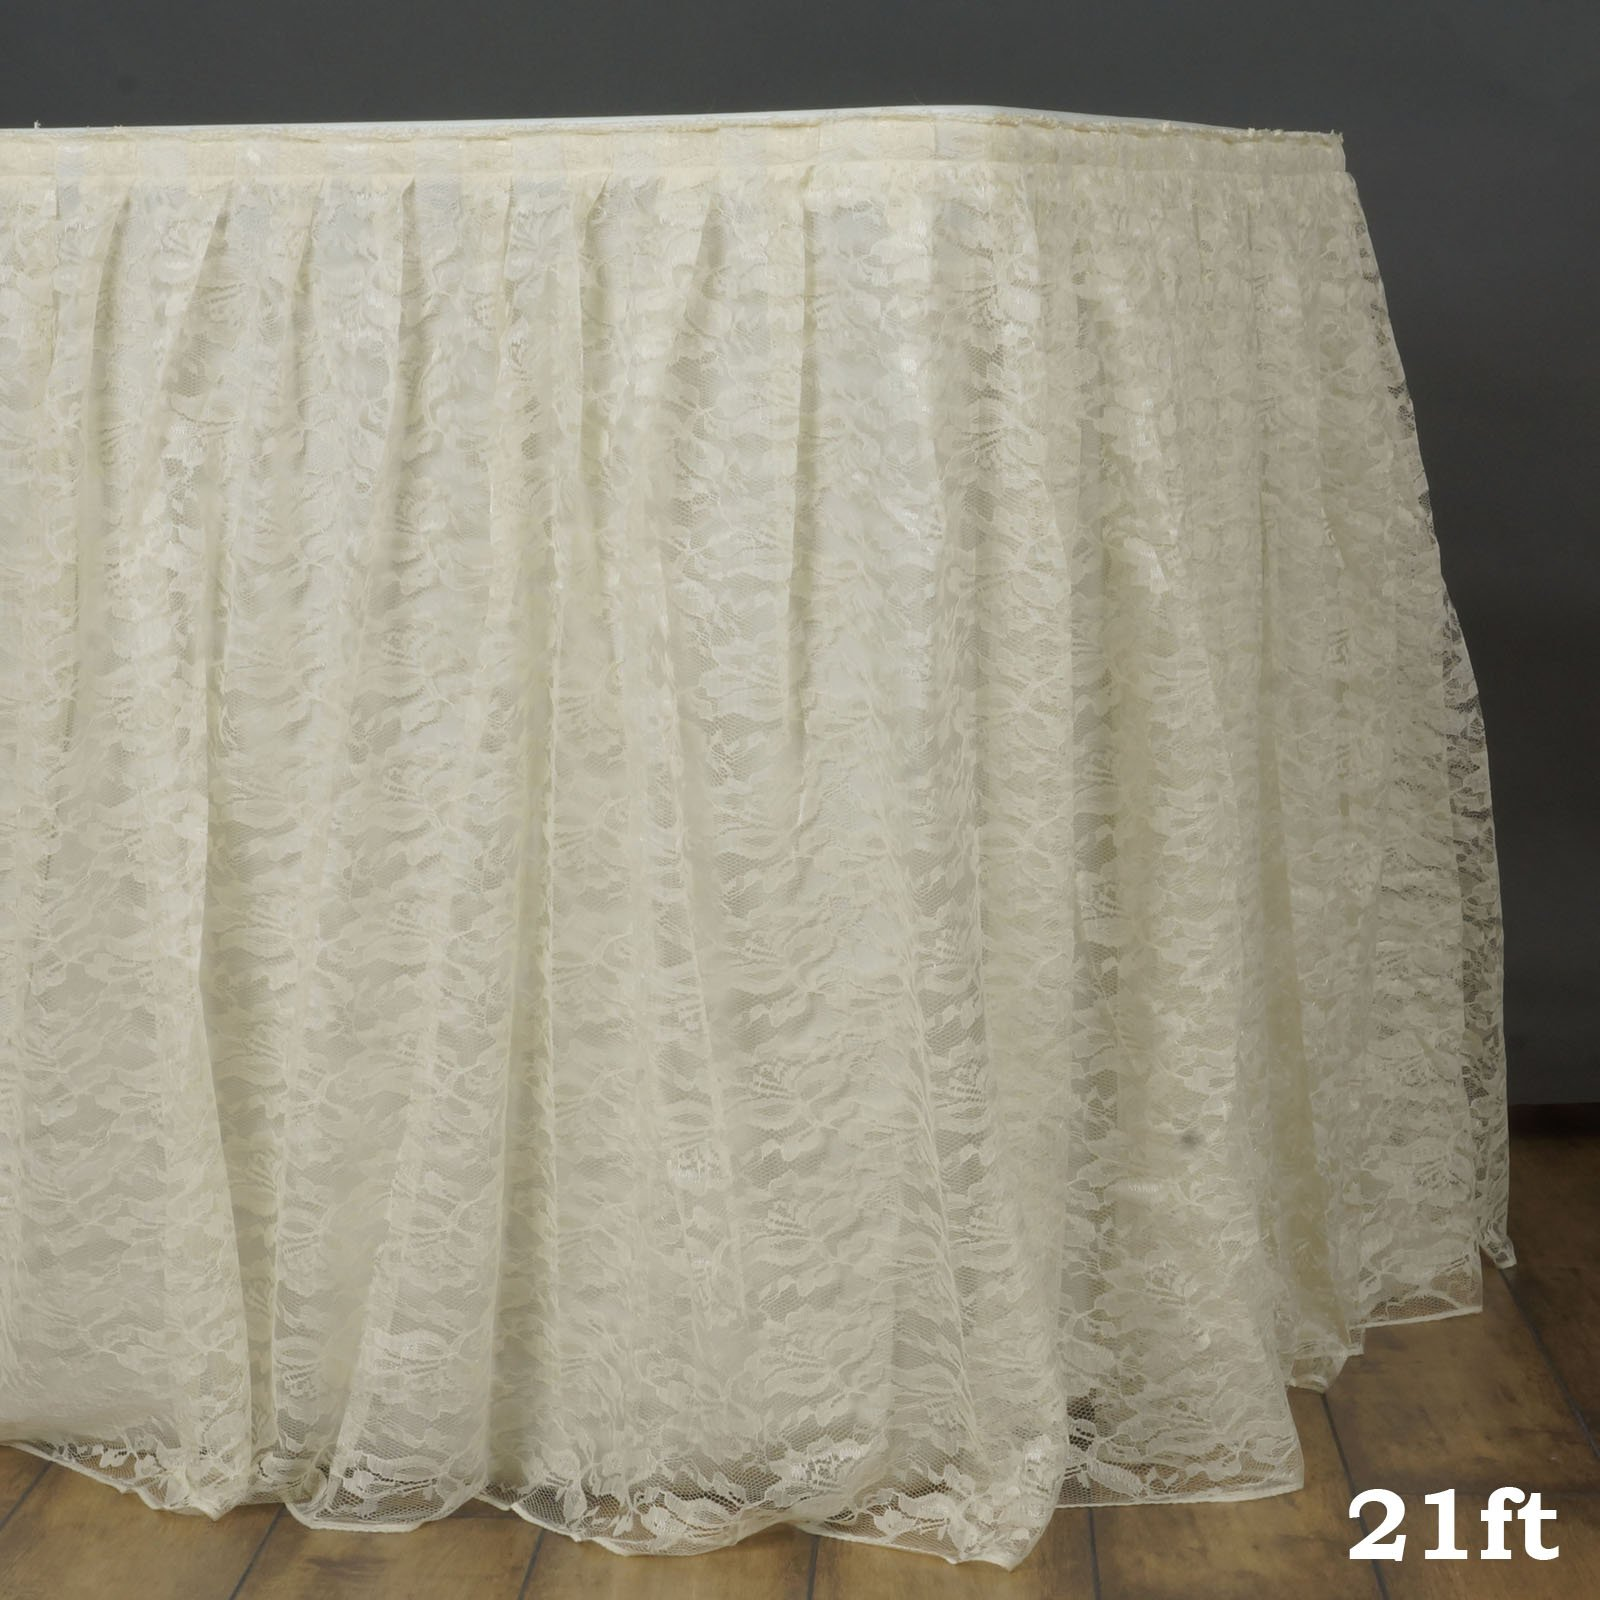 Efavormart Ivory Dual Layer Lace Polyester Table Skirt for Kitchen Dining Catering Wedding Birthday Party Decorations Events 21FT